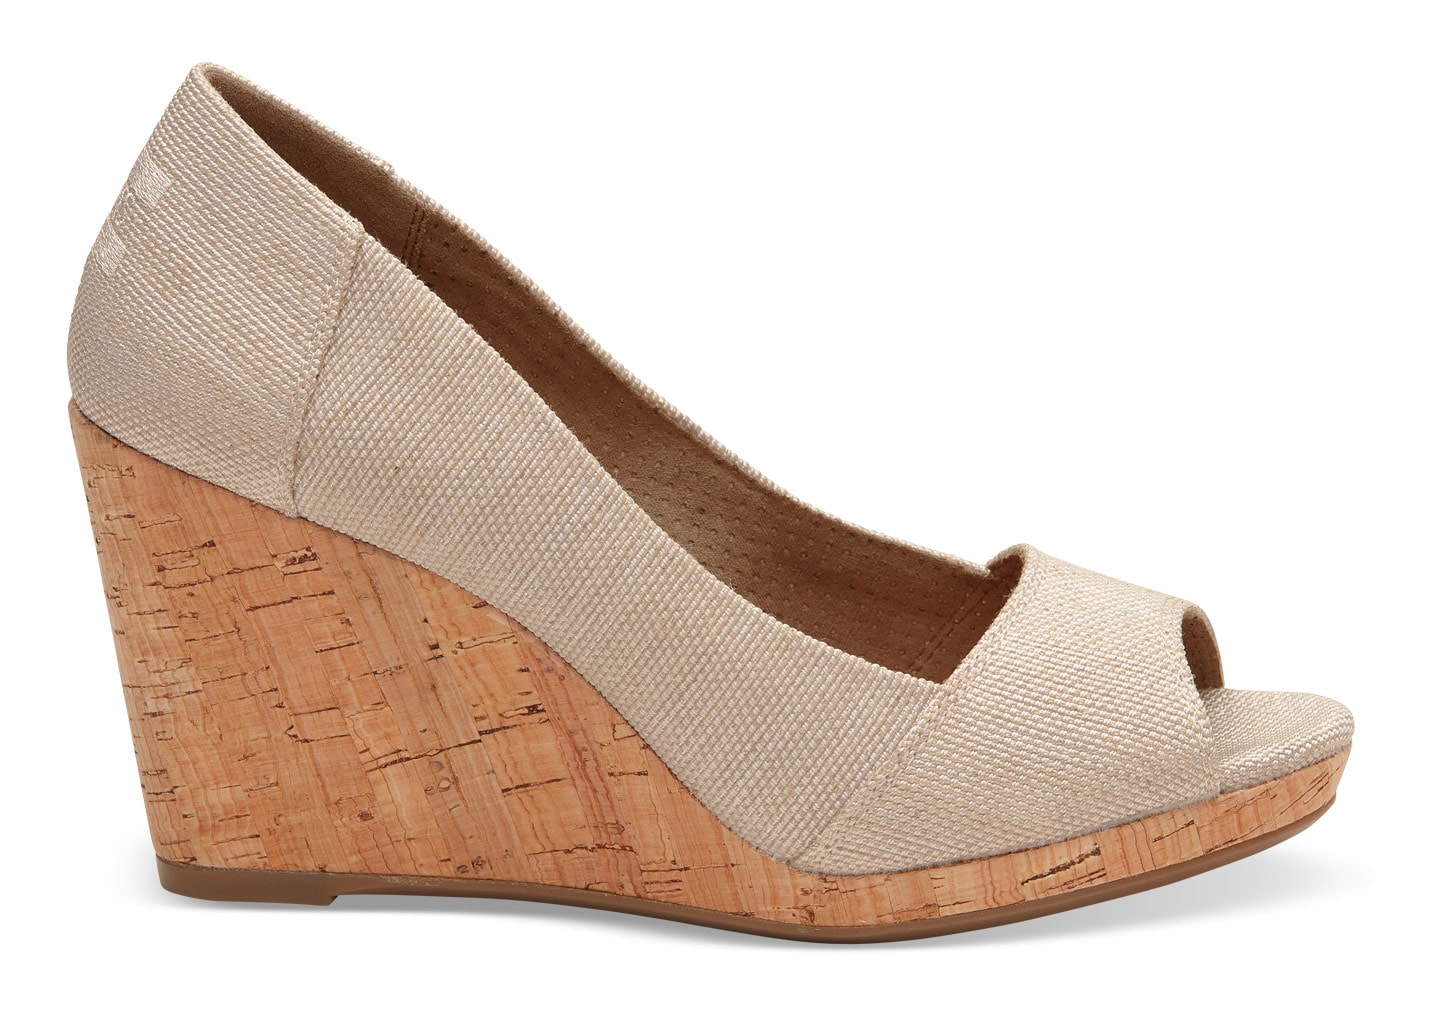 wedges shoes alternative image 1 ... qqriehi